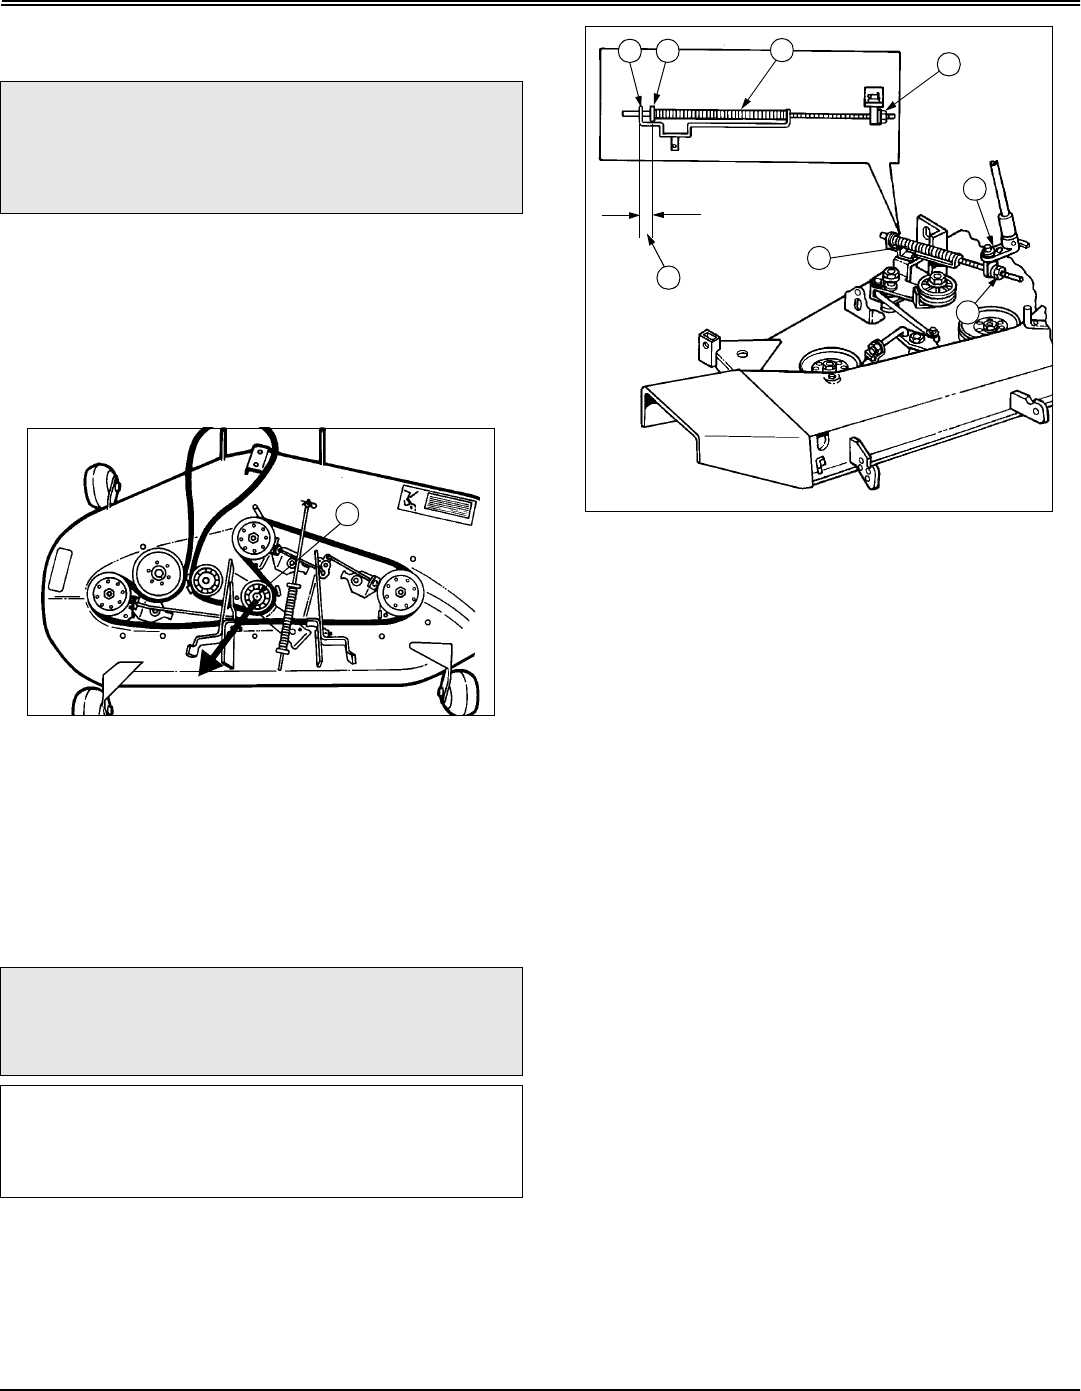 page 35 of scotts lawn mower s2546 user guide manualsonline com Scotts 1642H Wiring-Diagram Kohler 16HP scotts 1642h wiring diagram